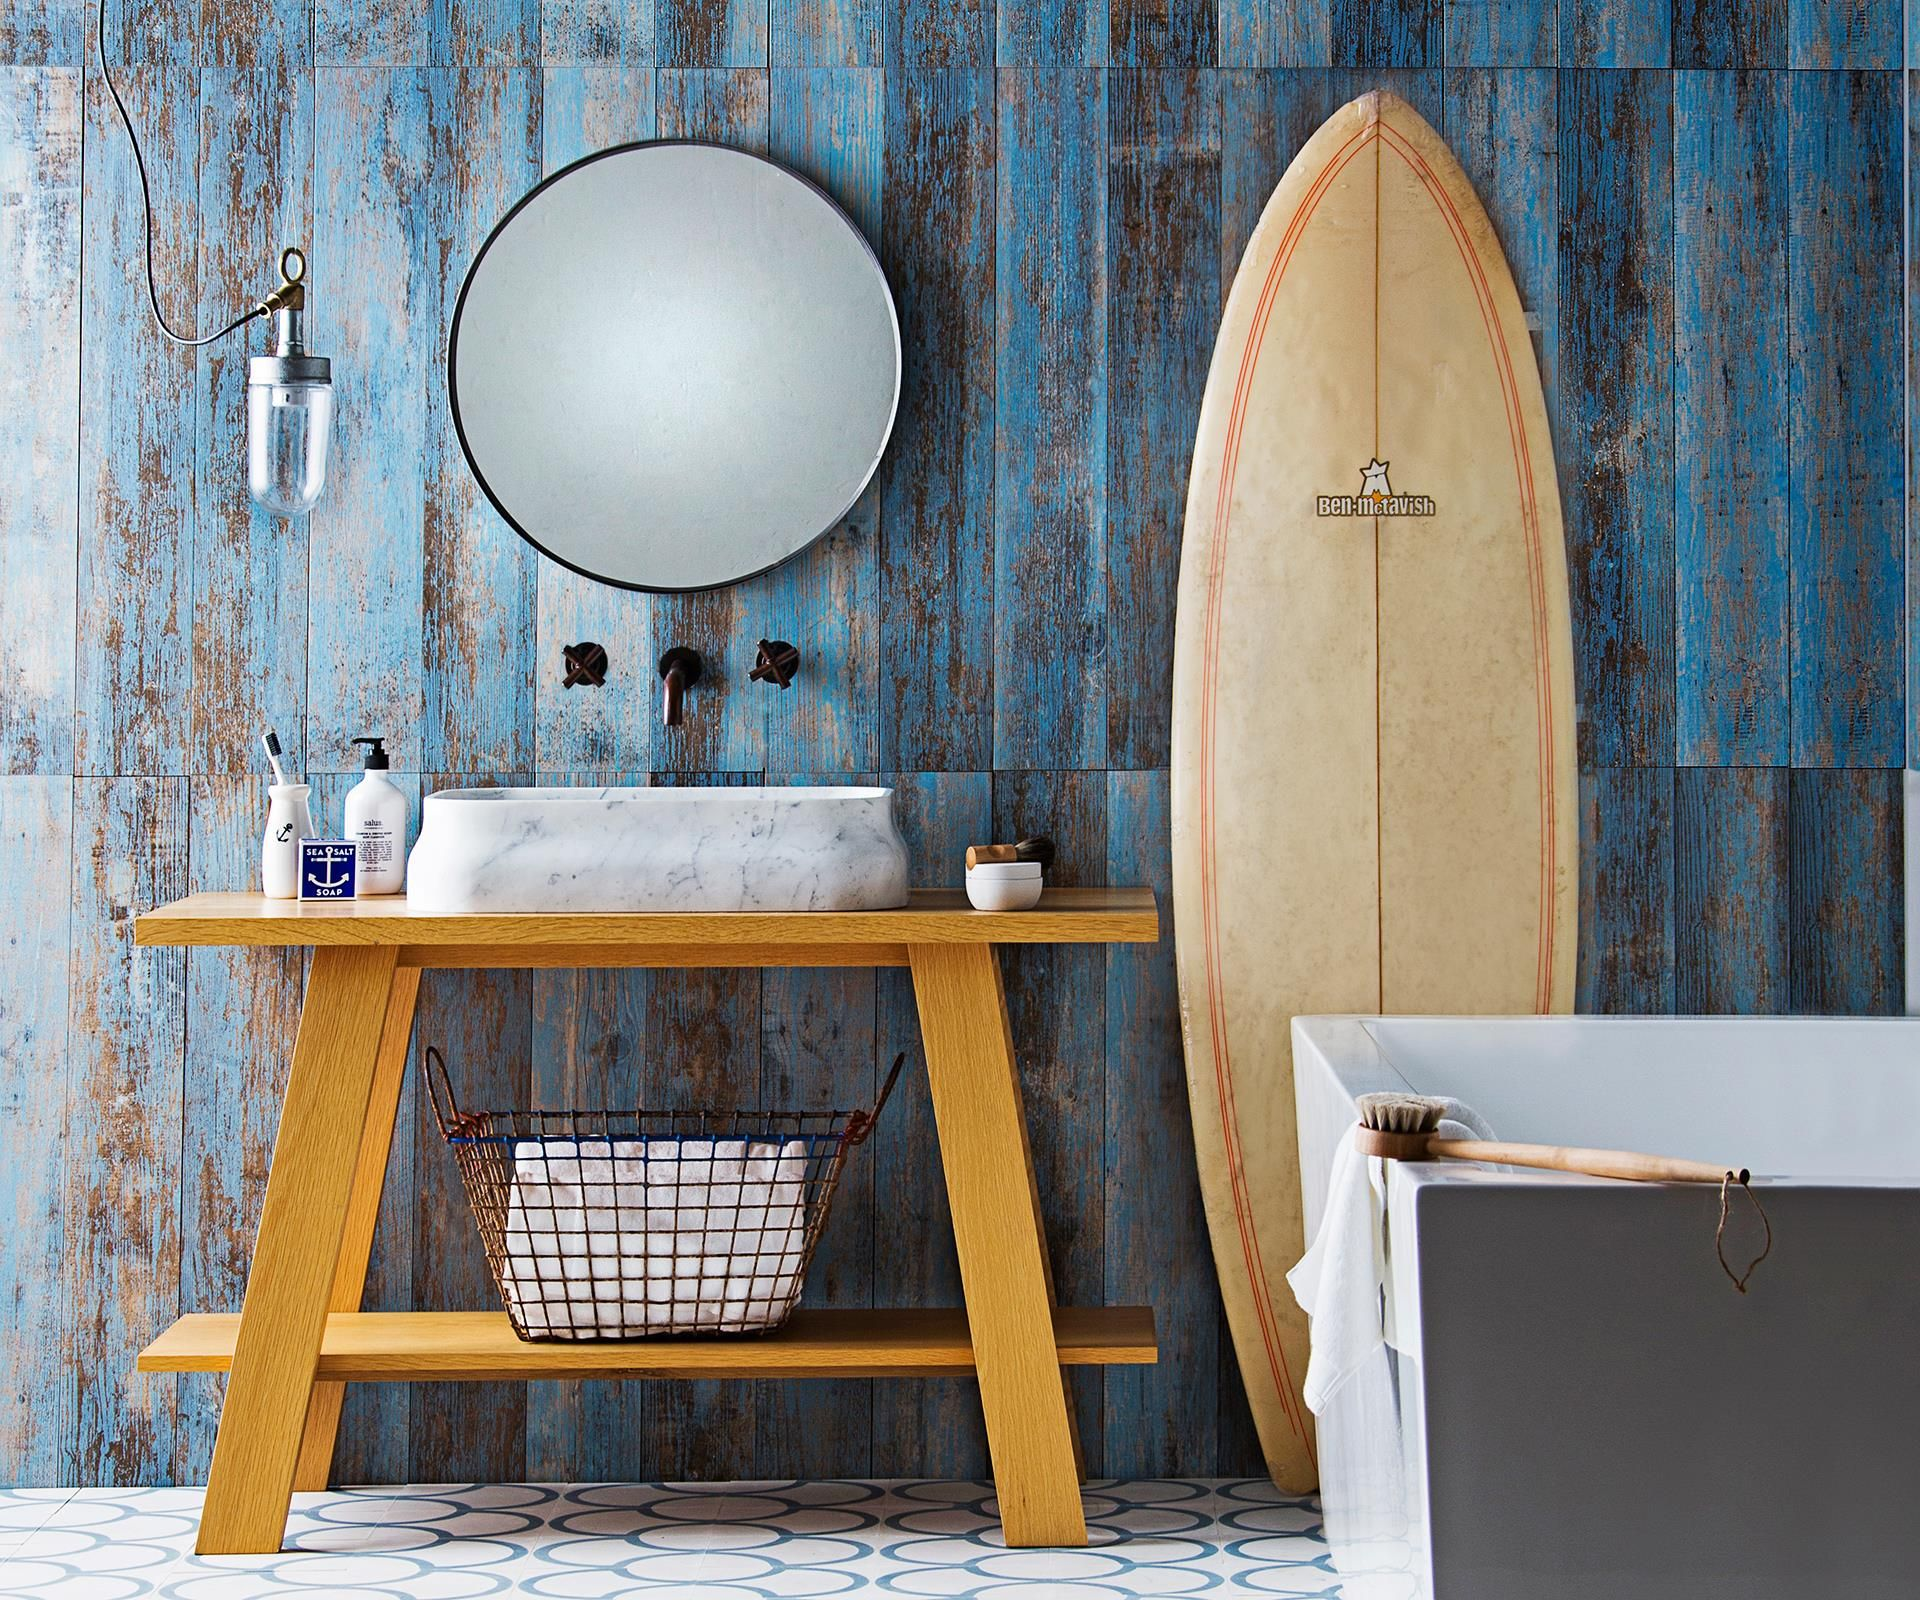 Beautify the bathroom with a bold new look. Be inspired by three trendy bathroom styling designs packed with creative ideas and divine buys.